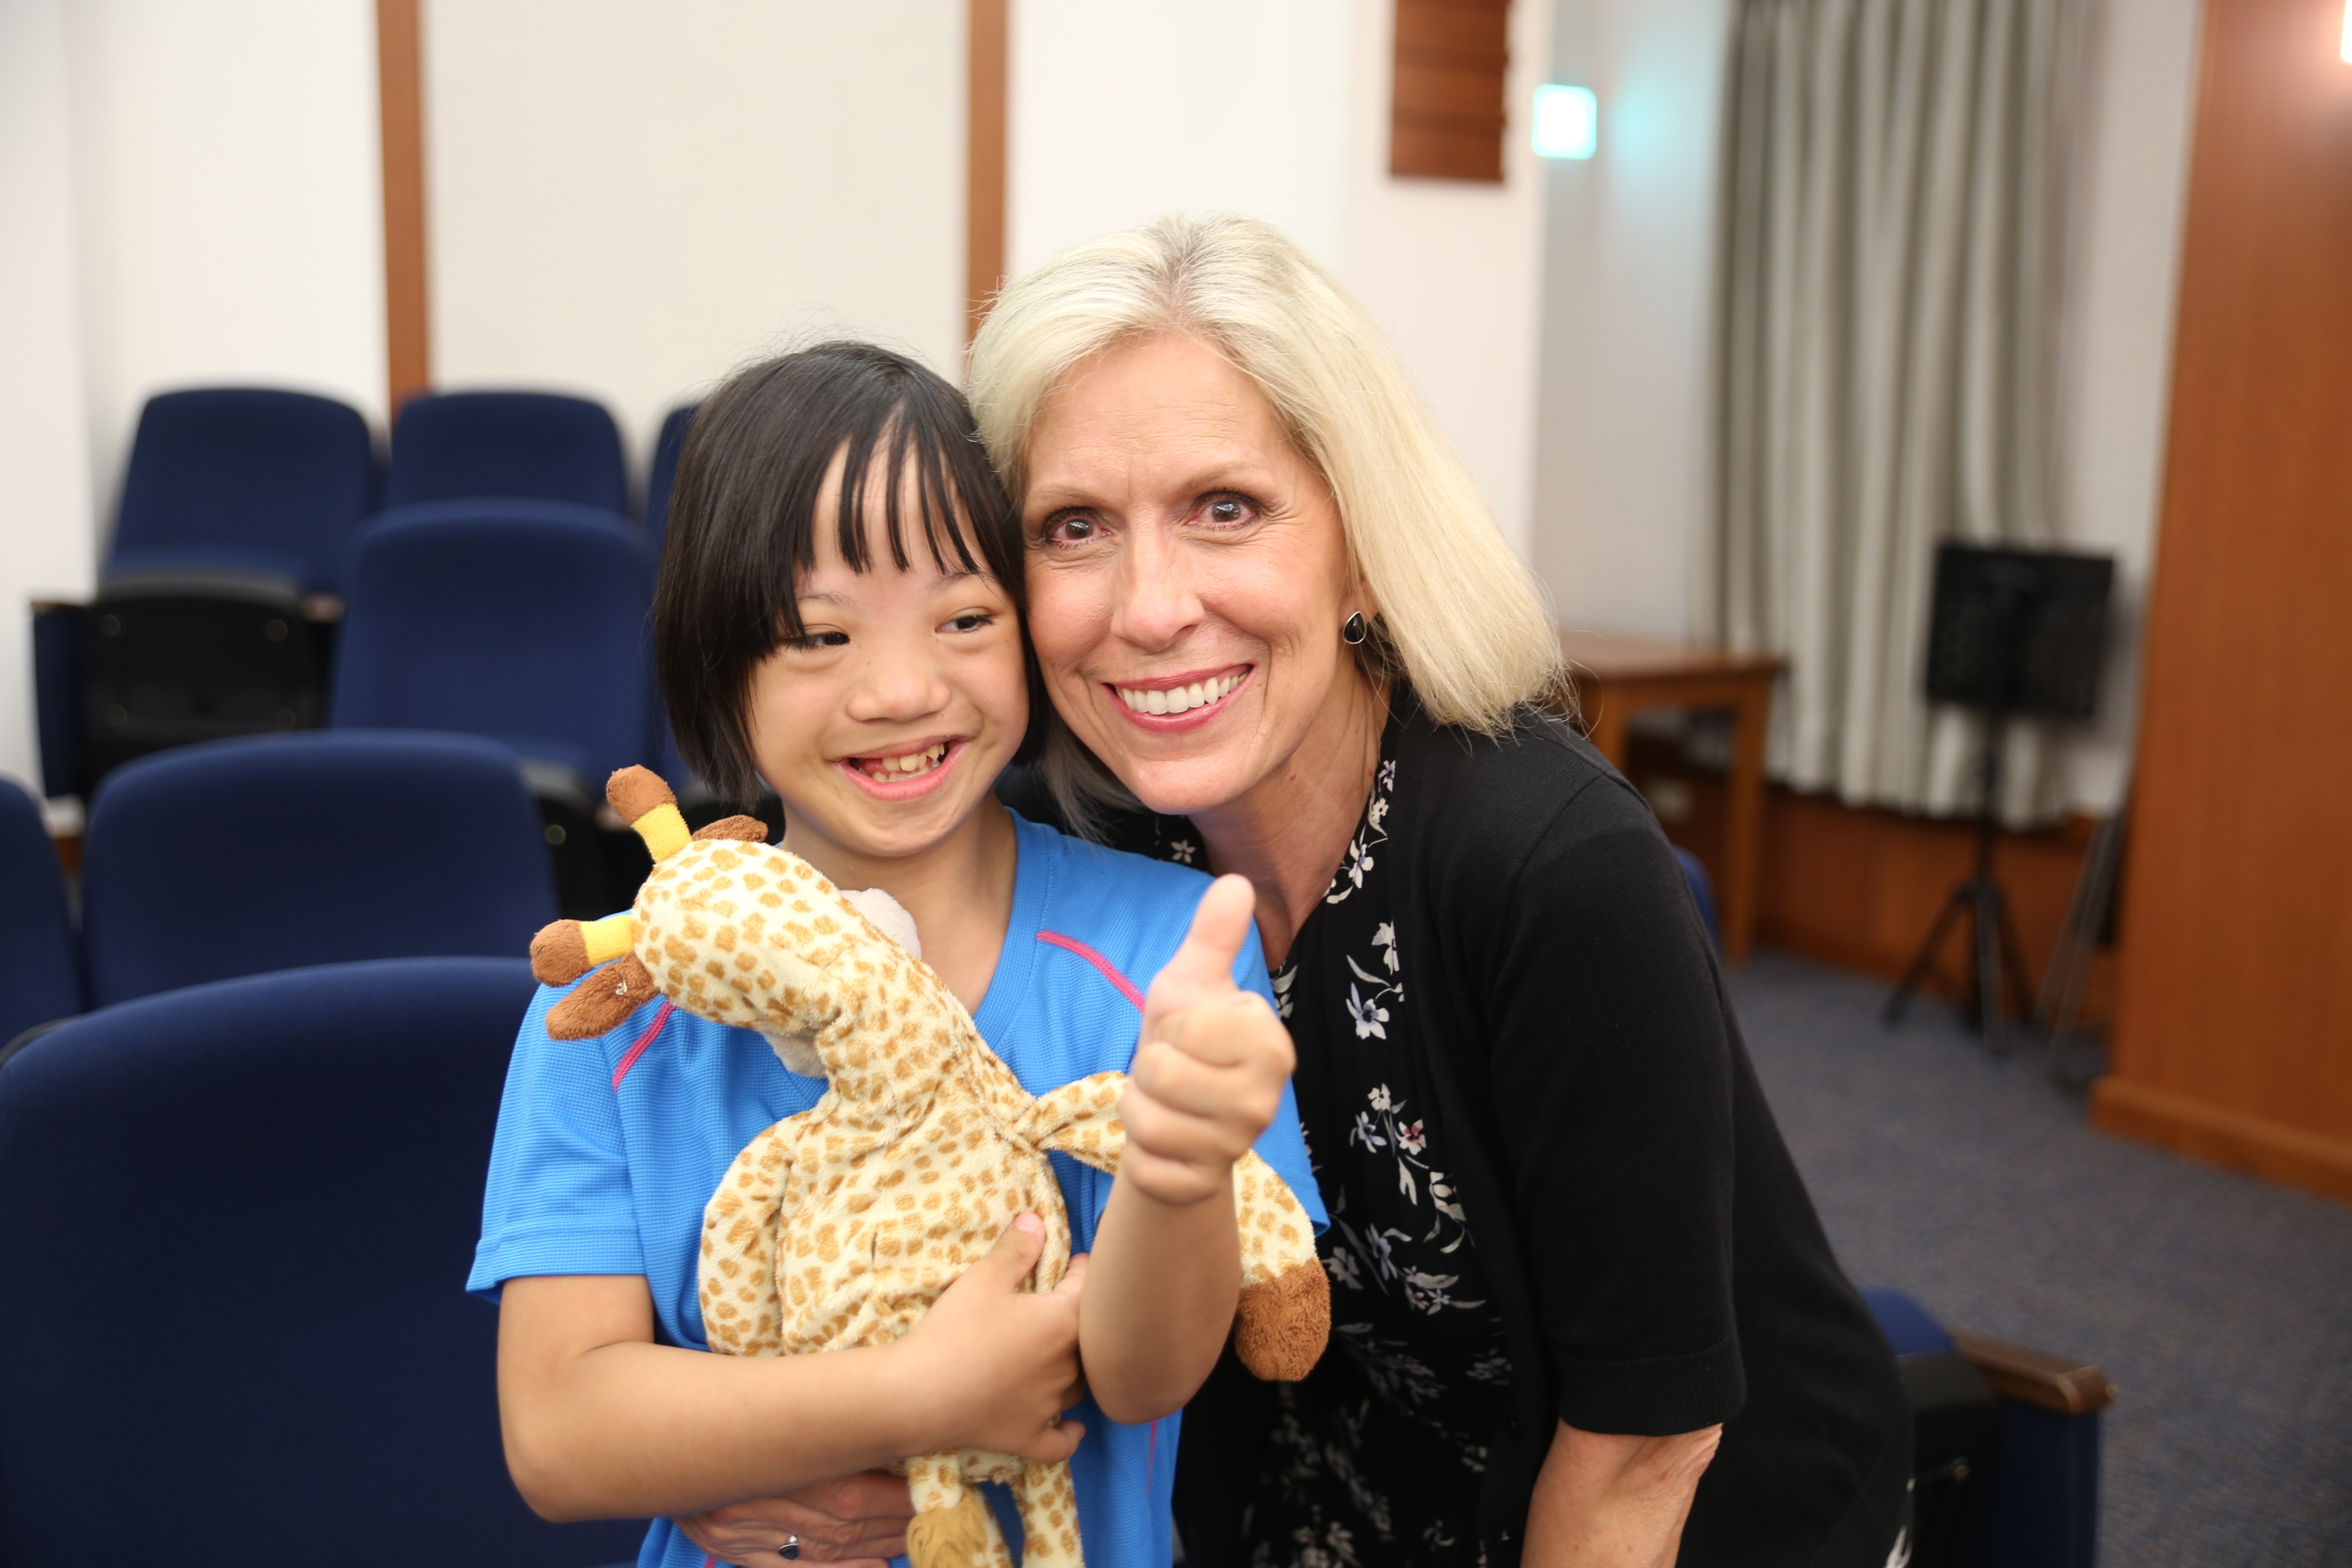 Sister Joy D. Jones, Primary general president, takes a photo with a youth member following a devotional in Hualien, Taiwan, during a visit to the Asia Area from Aug. 17 to 14, 2019.